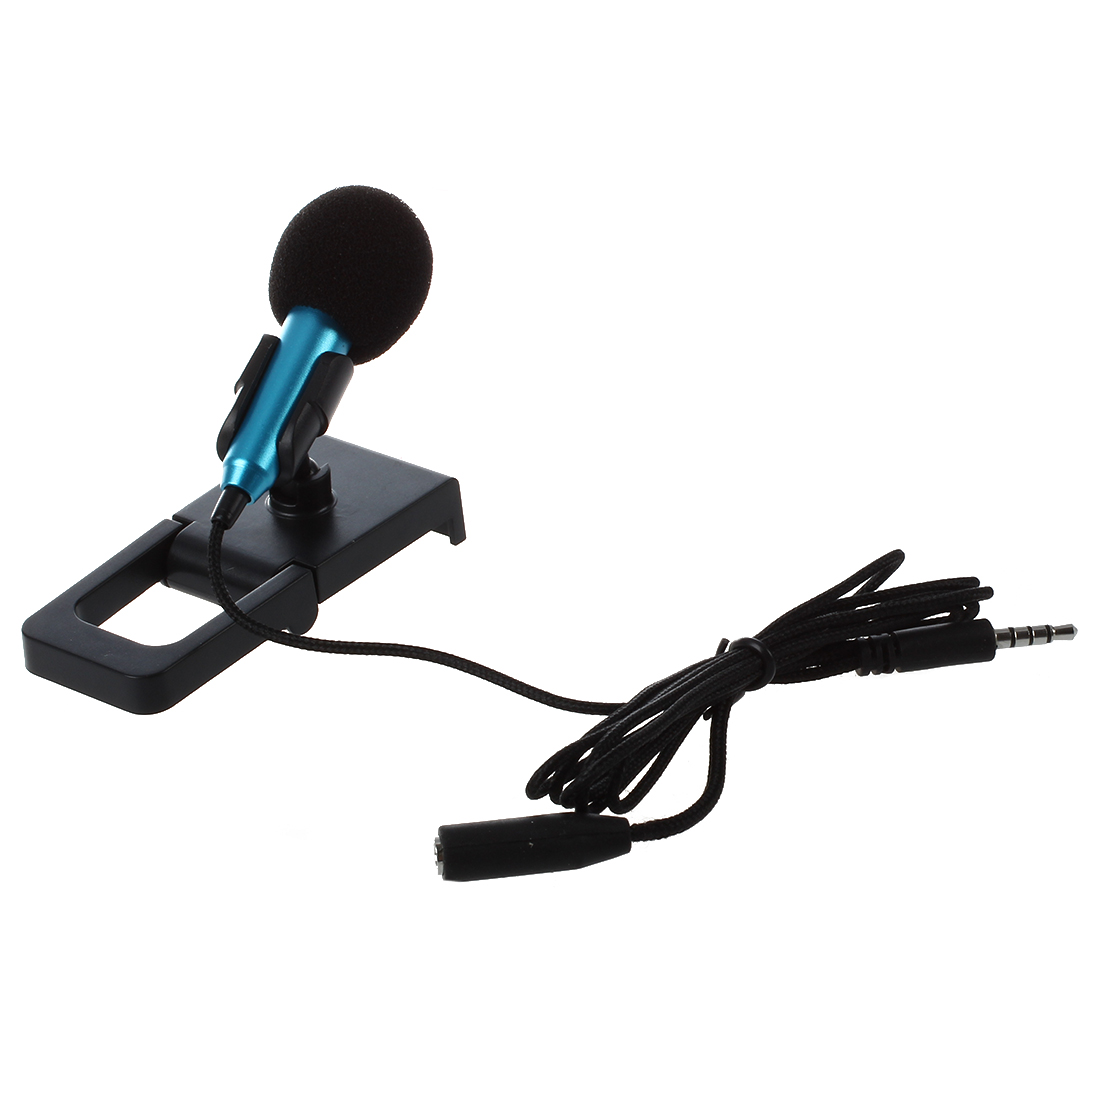 Mini hand microphone for voice recording, Internet chat on smartphone, notebook or tablet, with 3.5 mm mic cable and mic stand